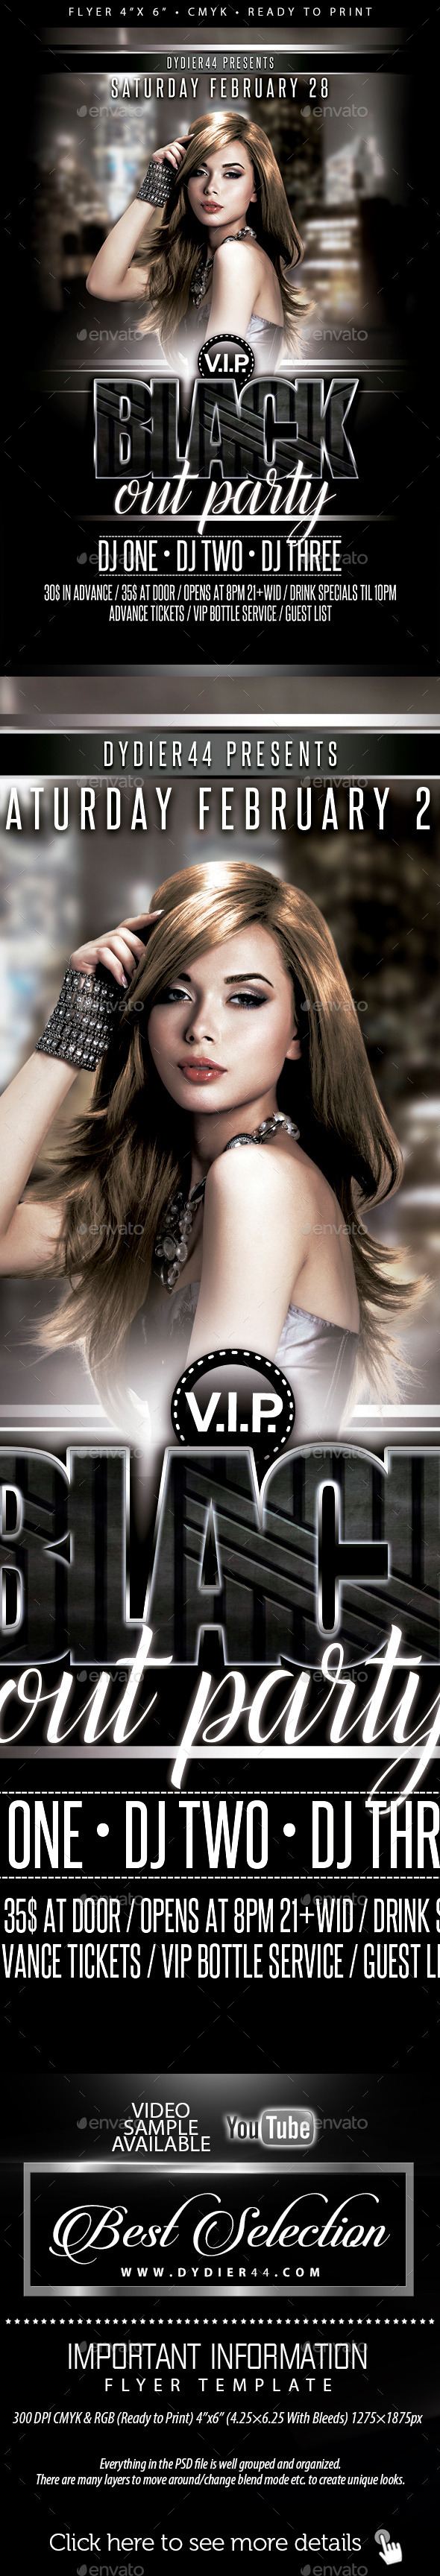 VIP Blackout Party (Flyer Template 4x6) - Clubs & Parties Events